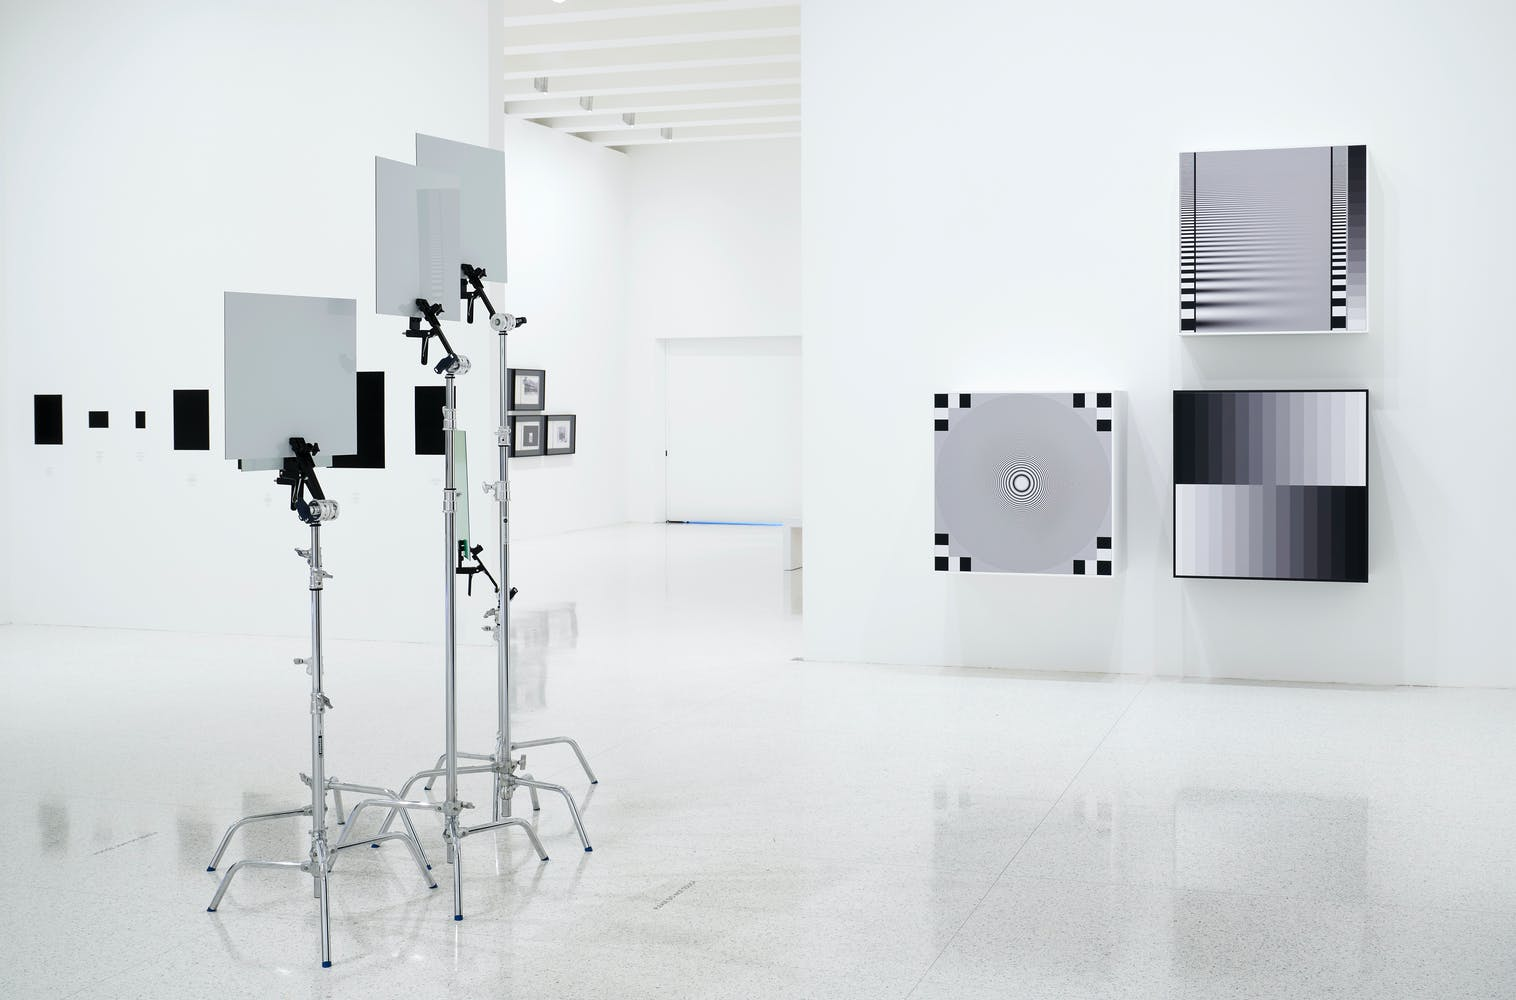 Gallery with black and white geometric paintings on the wall and white cards on metal stands in the center of the room